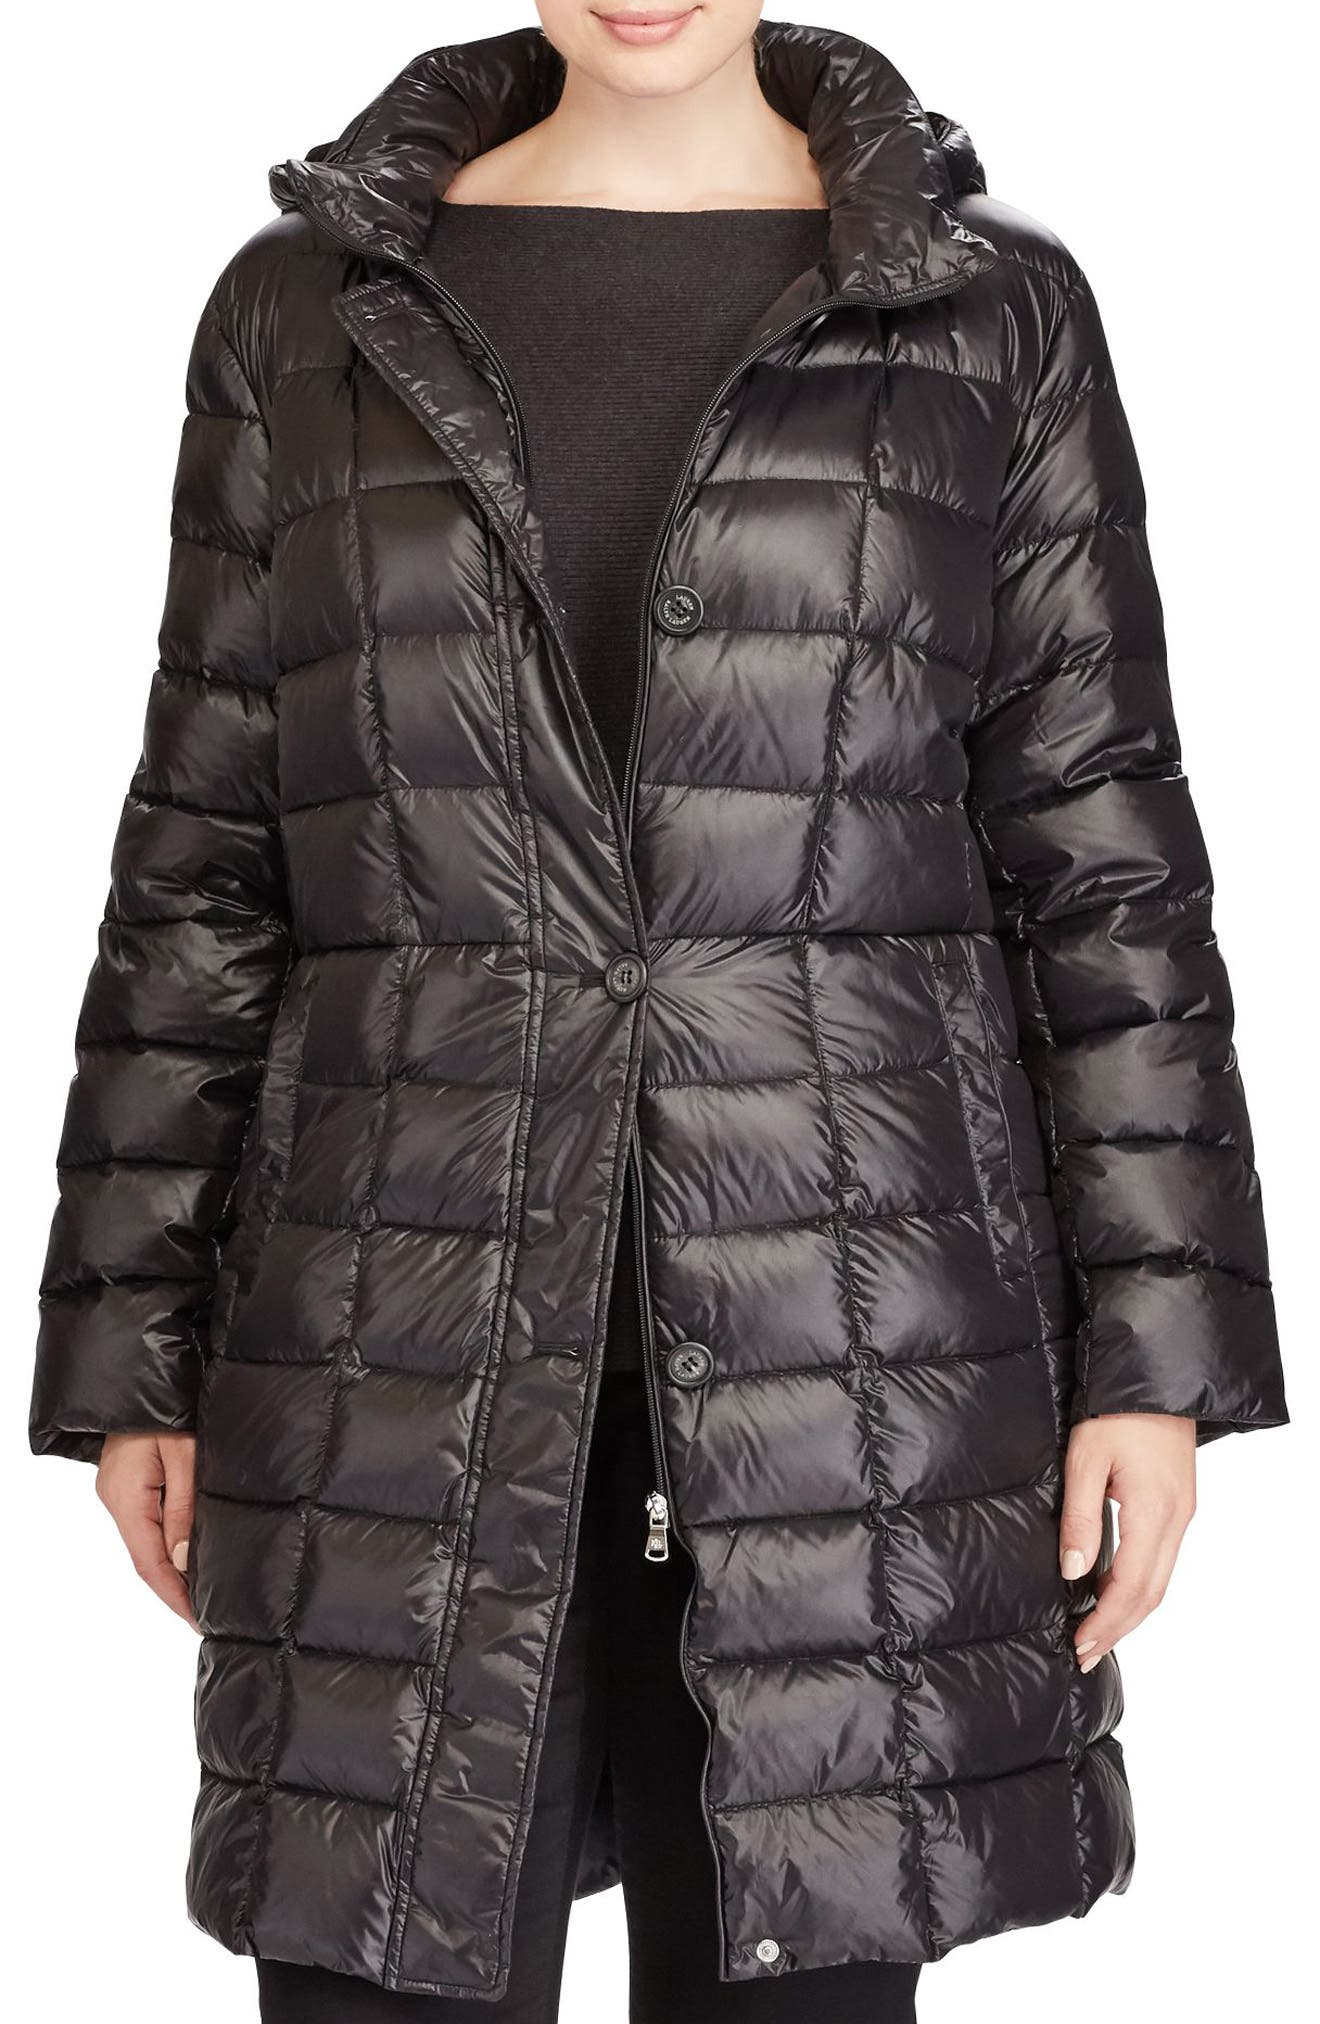 Alternate Image 1 Selected - Lauren Ralph Lauren Quilted Down Coat (Plus Size)